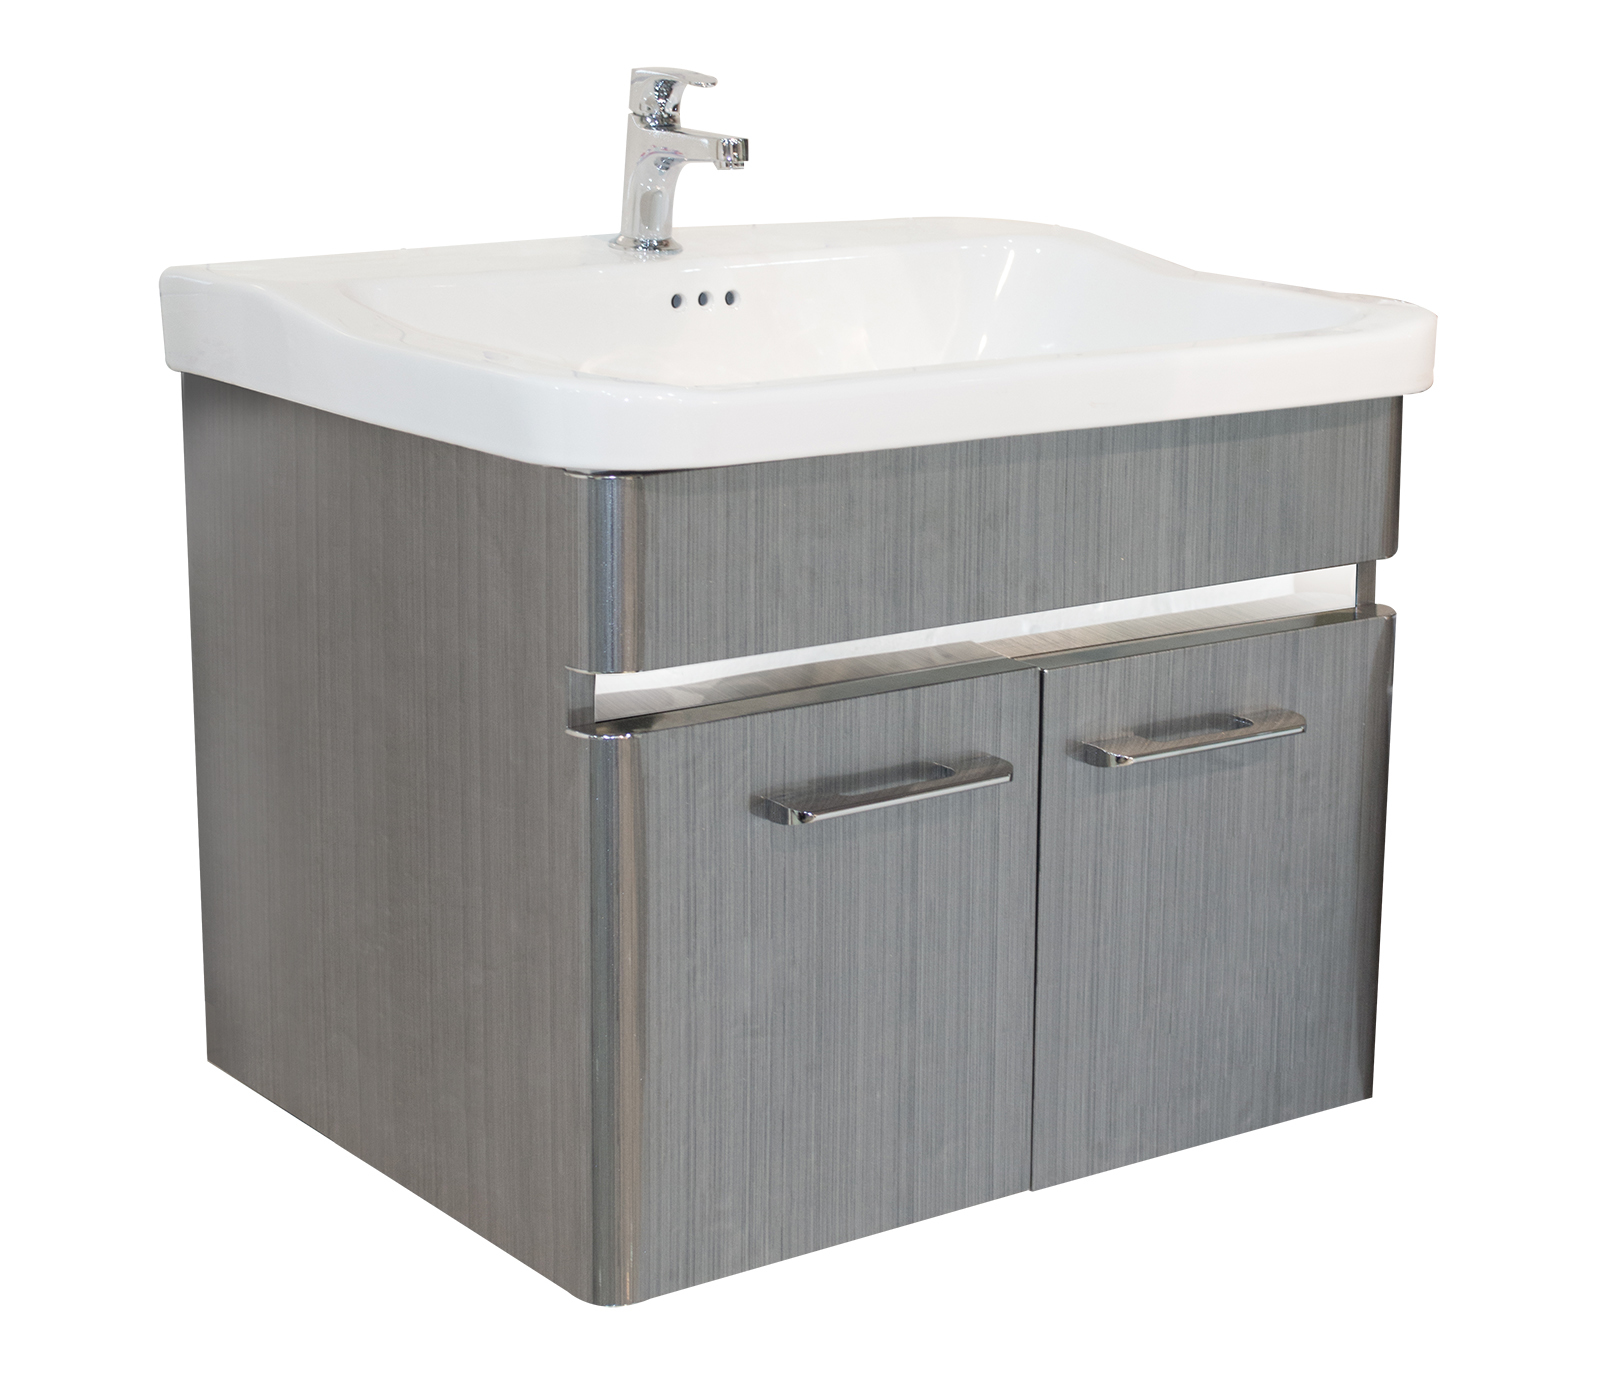 basin with cabinet MGB 5029 Tap 4T13 open sfile.jpg